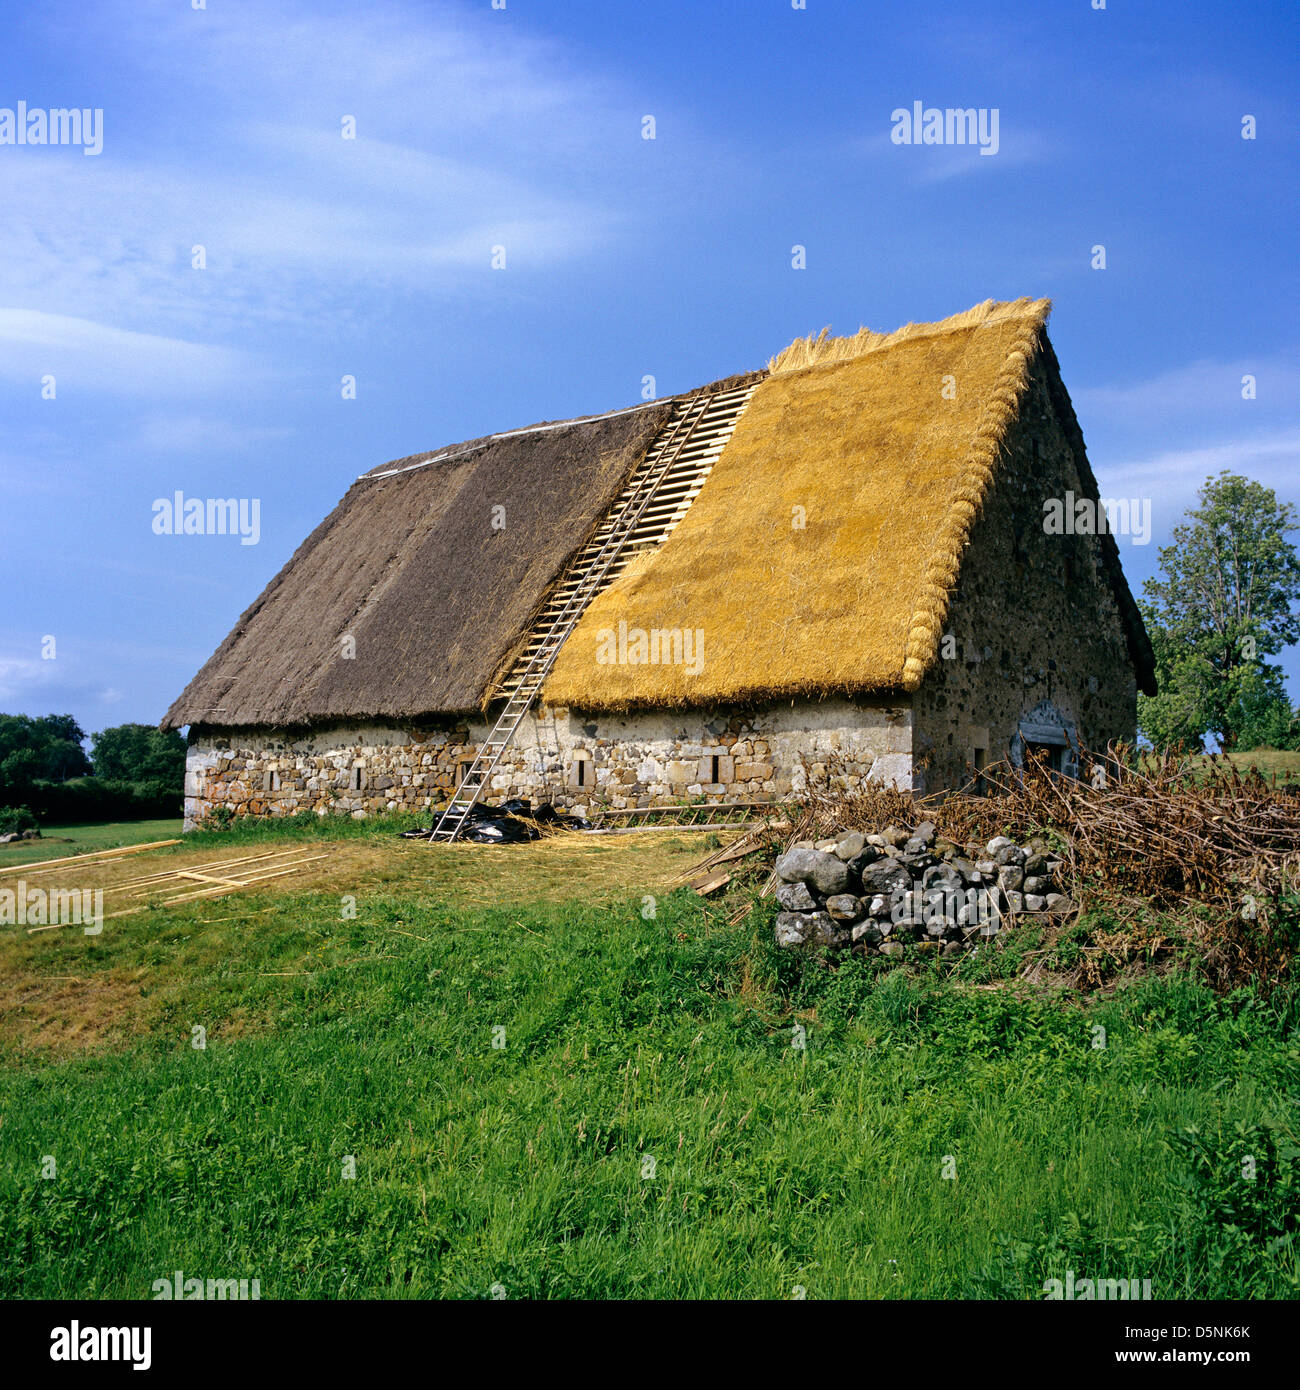 Restoration of a thatched roof on an old barn - Stock Image